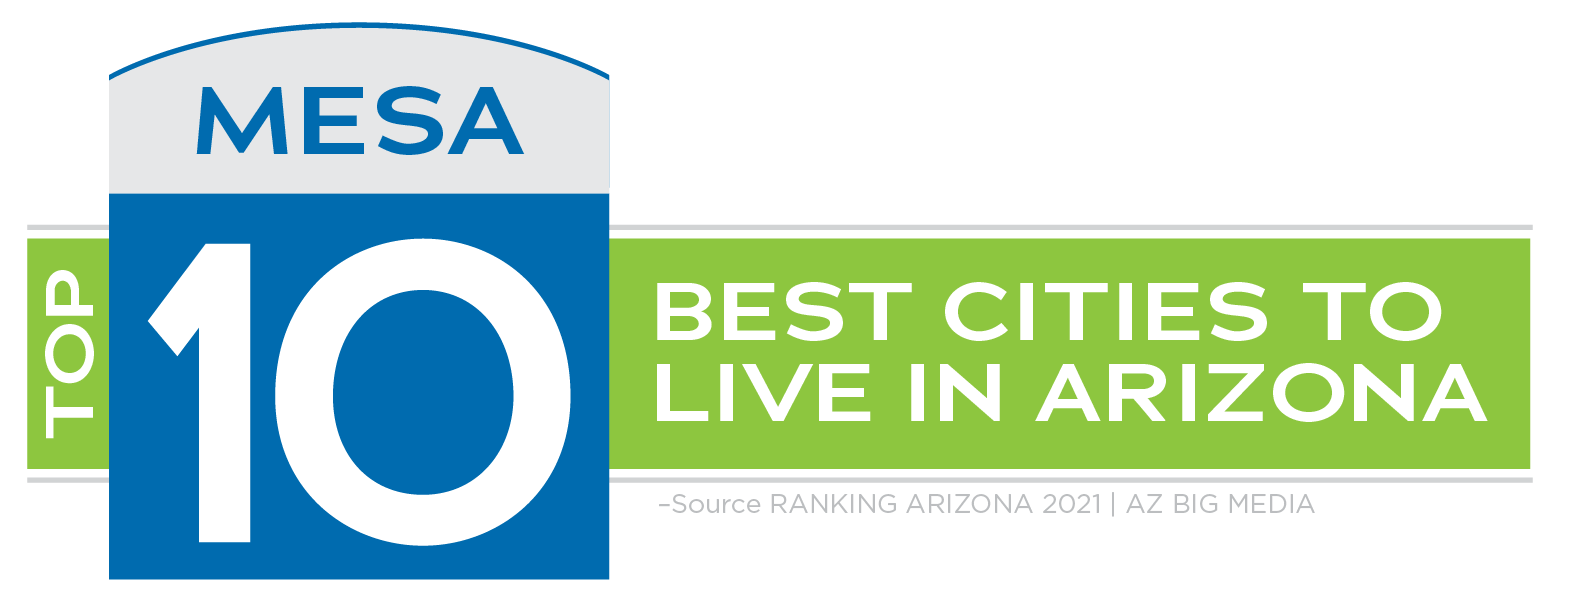 Mesa is ranked one of the best top 10 cities to live in Arizona